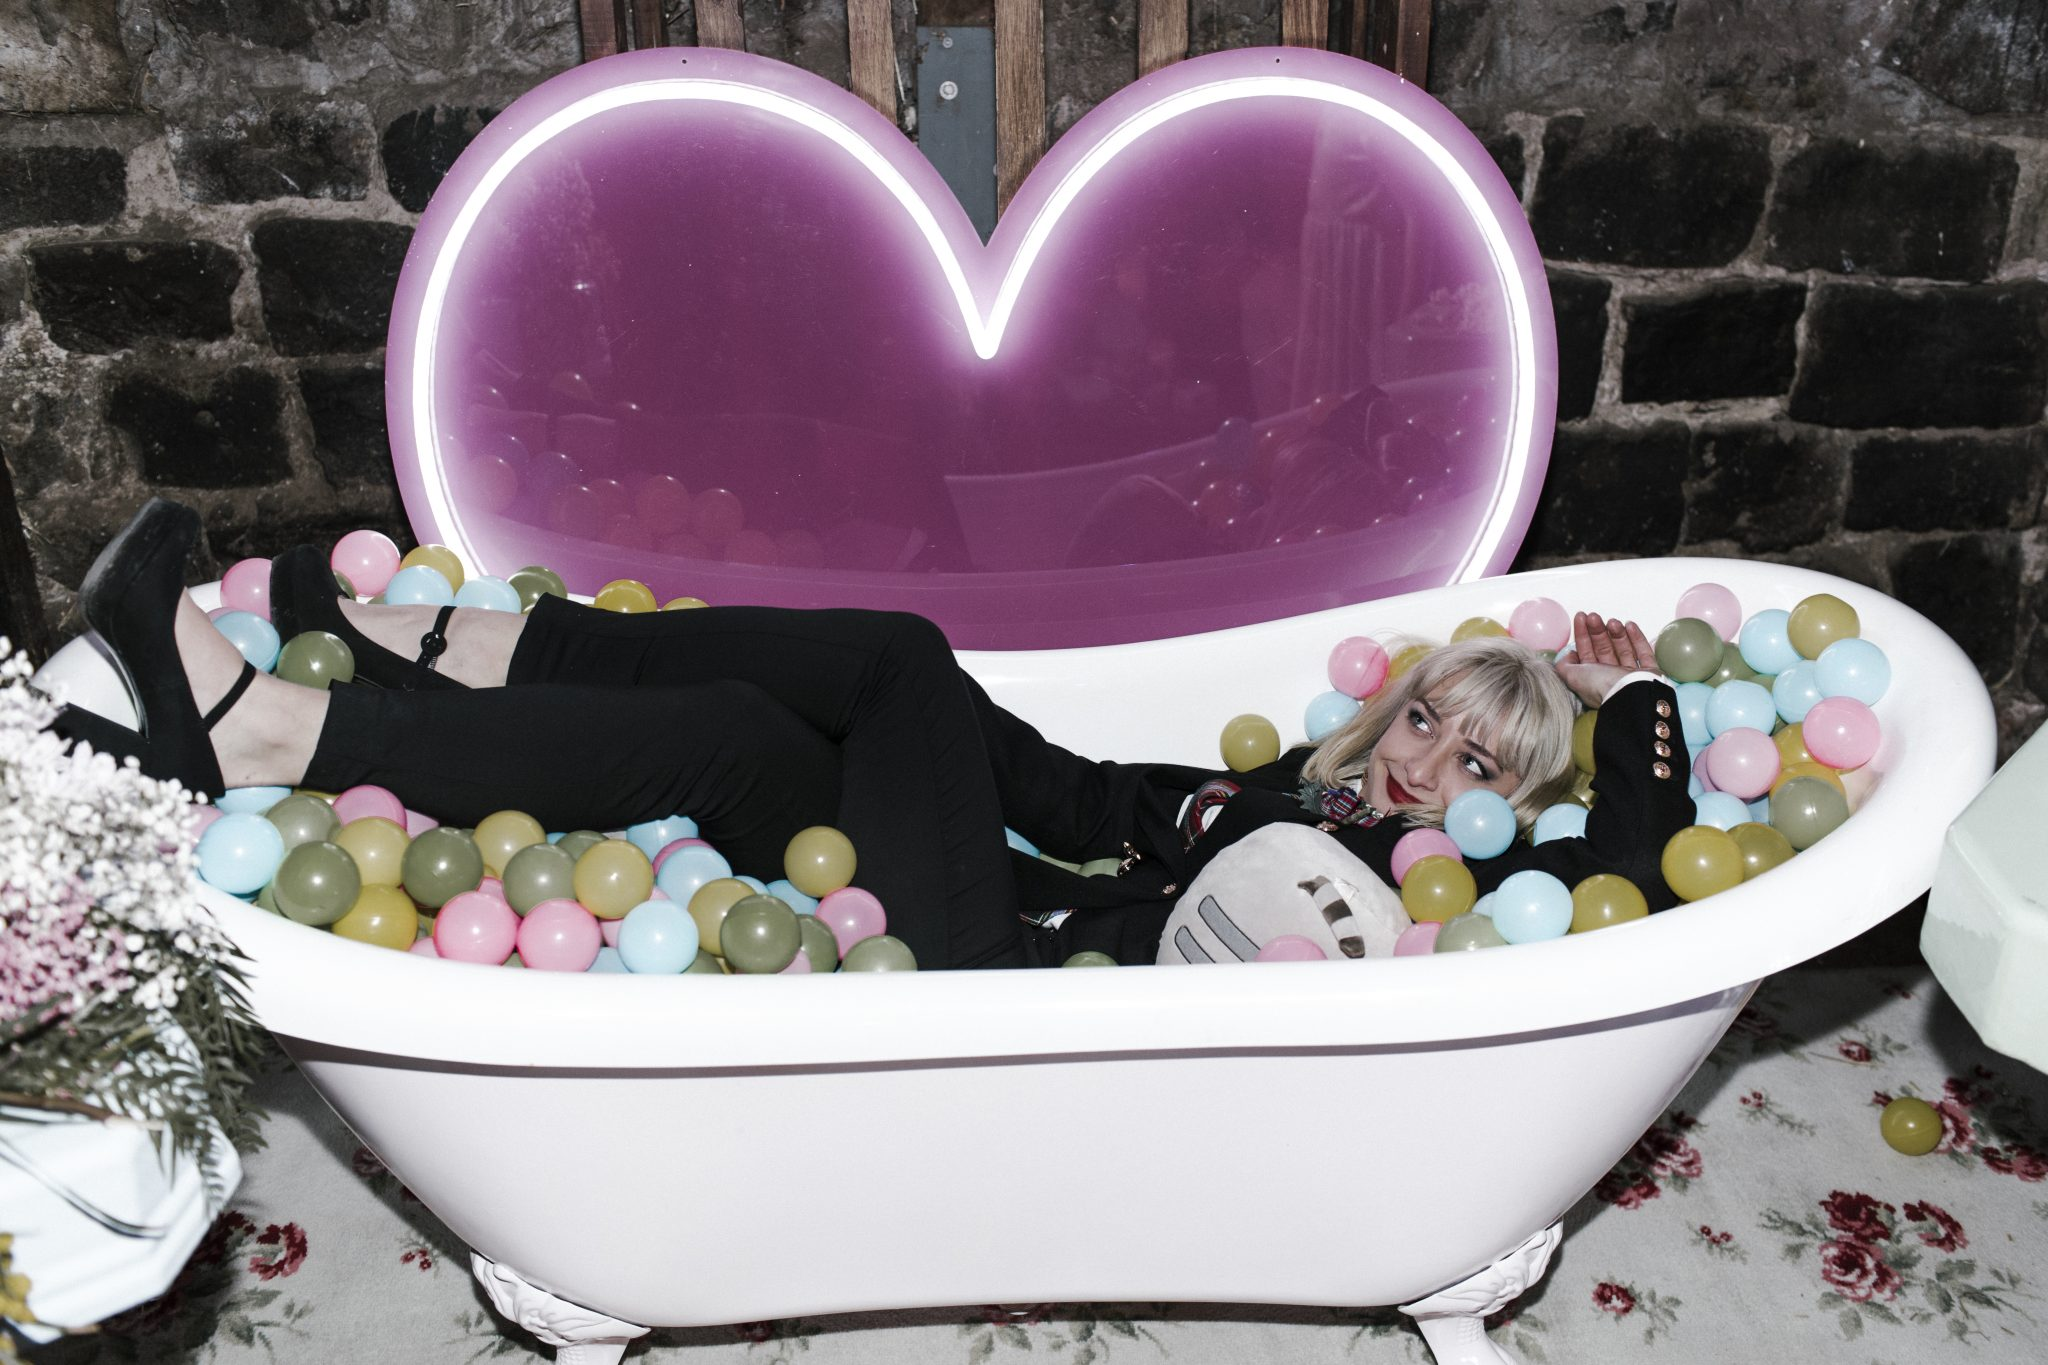 Pink bathtub ball pit and giant heart neon sign